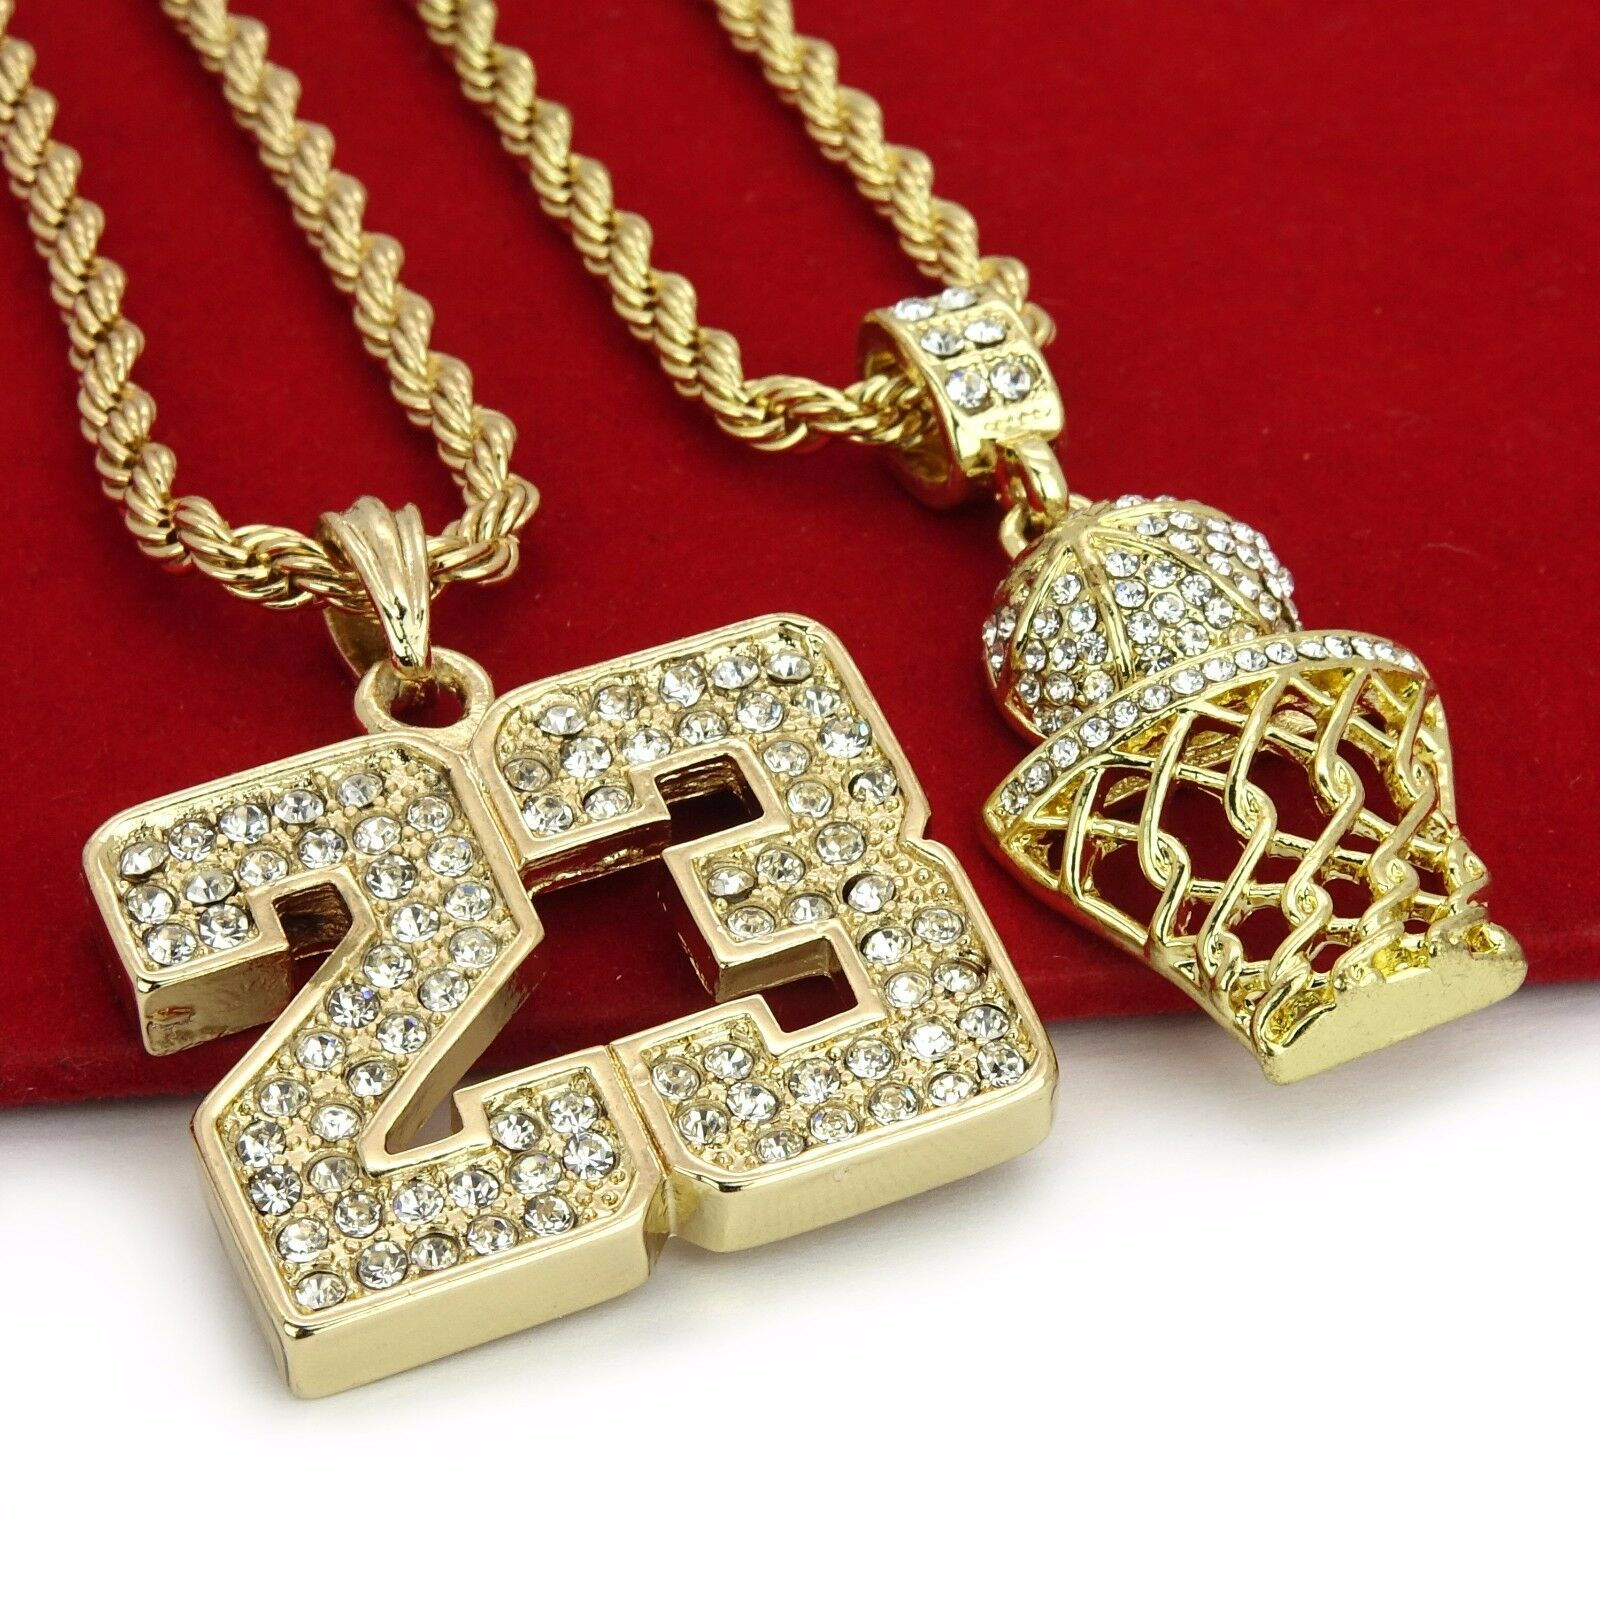 Gold Plated Silver Necklace Set 290 00: 14K Gold Plated Hip Hop Iced Out Basketball & 23 Pendant W